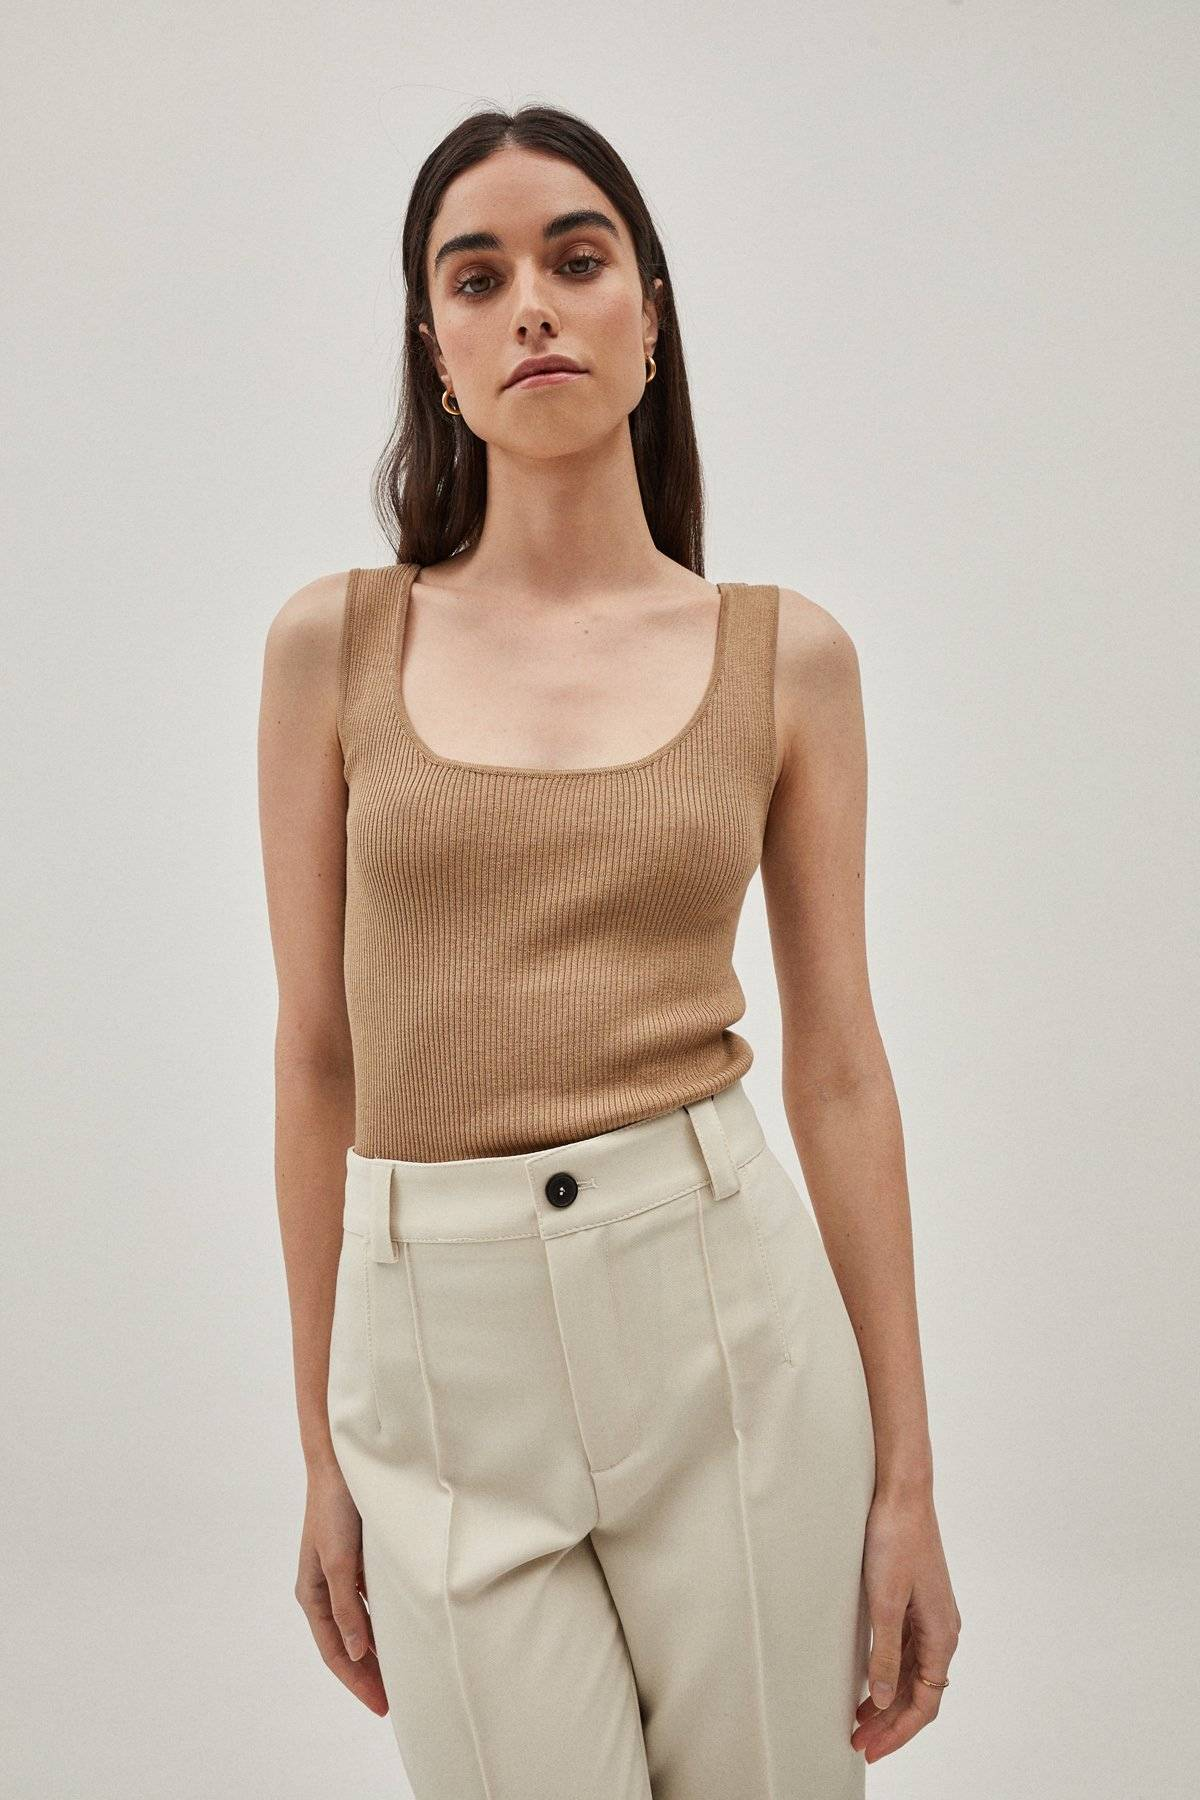 The Silk Cotton Tank Top - Camel